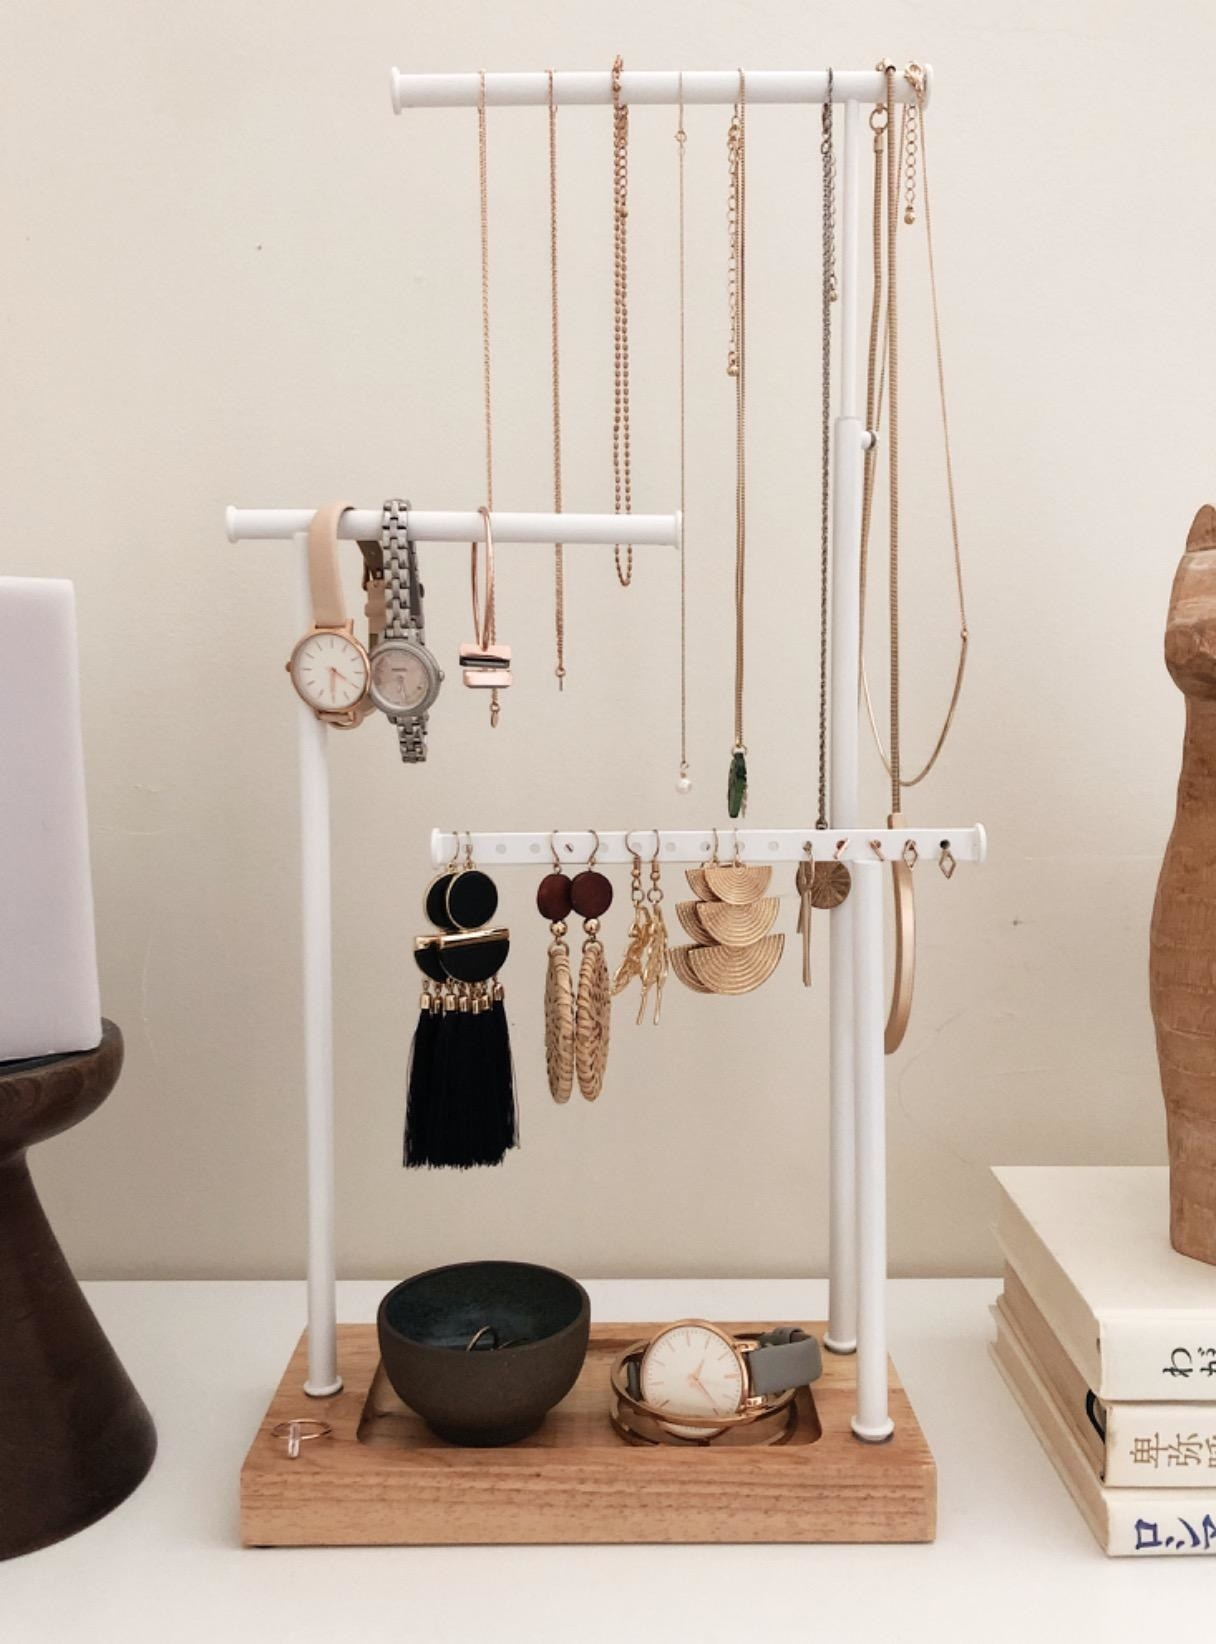 Reviewer pic of the three-tier jewelry stand in white with wood base and jewelry all over it